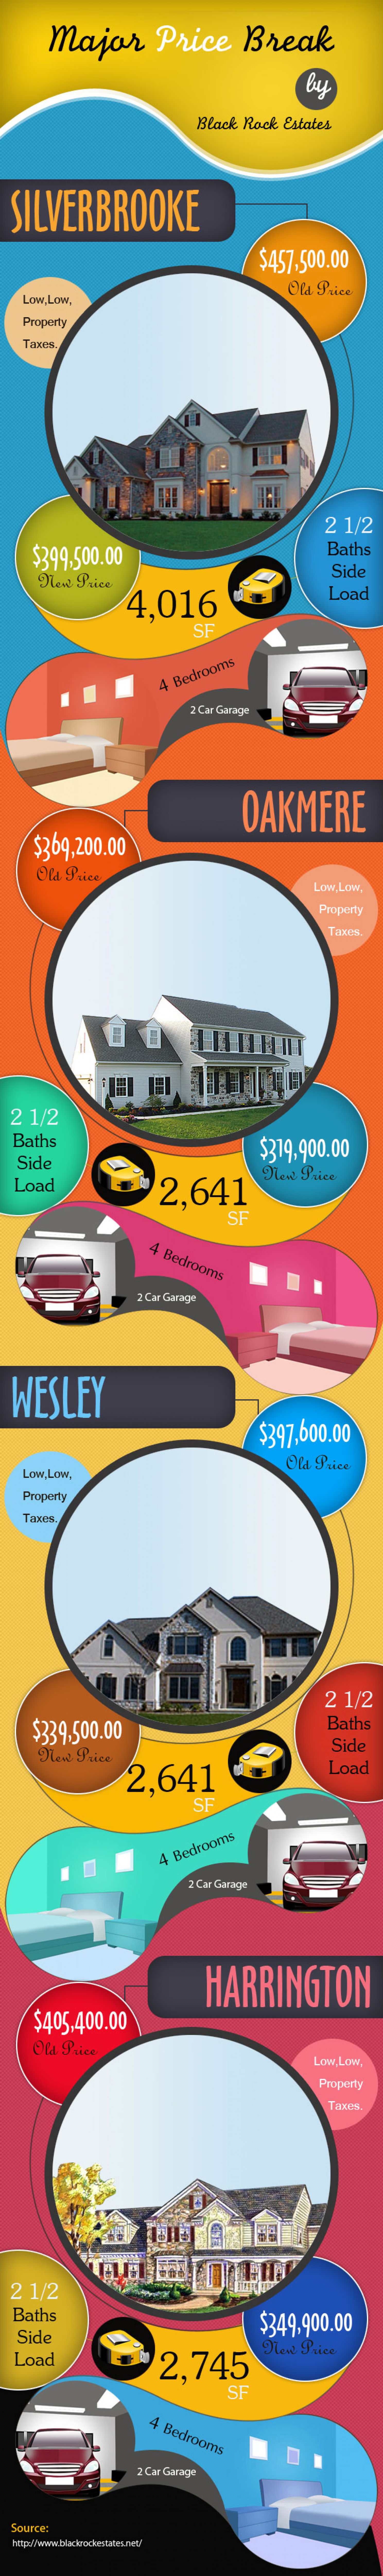 Major Pirce Break by Black Rock Estate Infographic